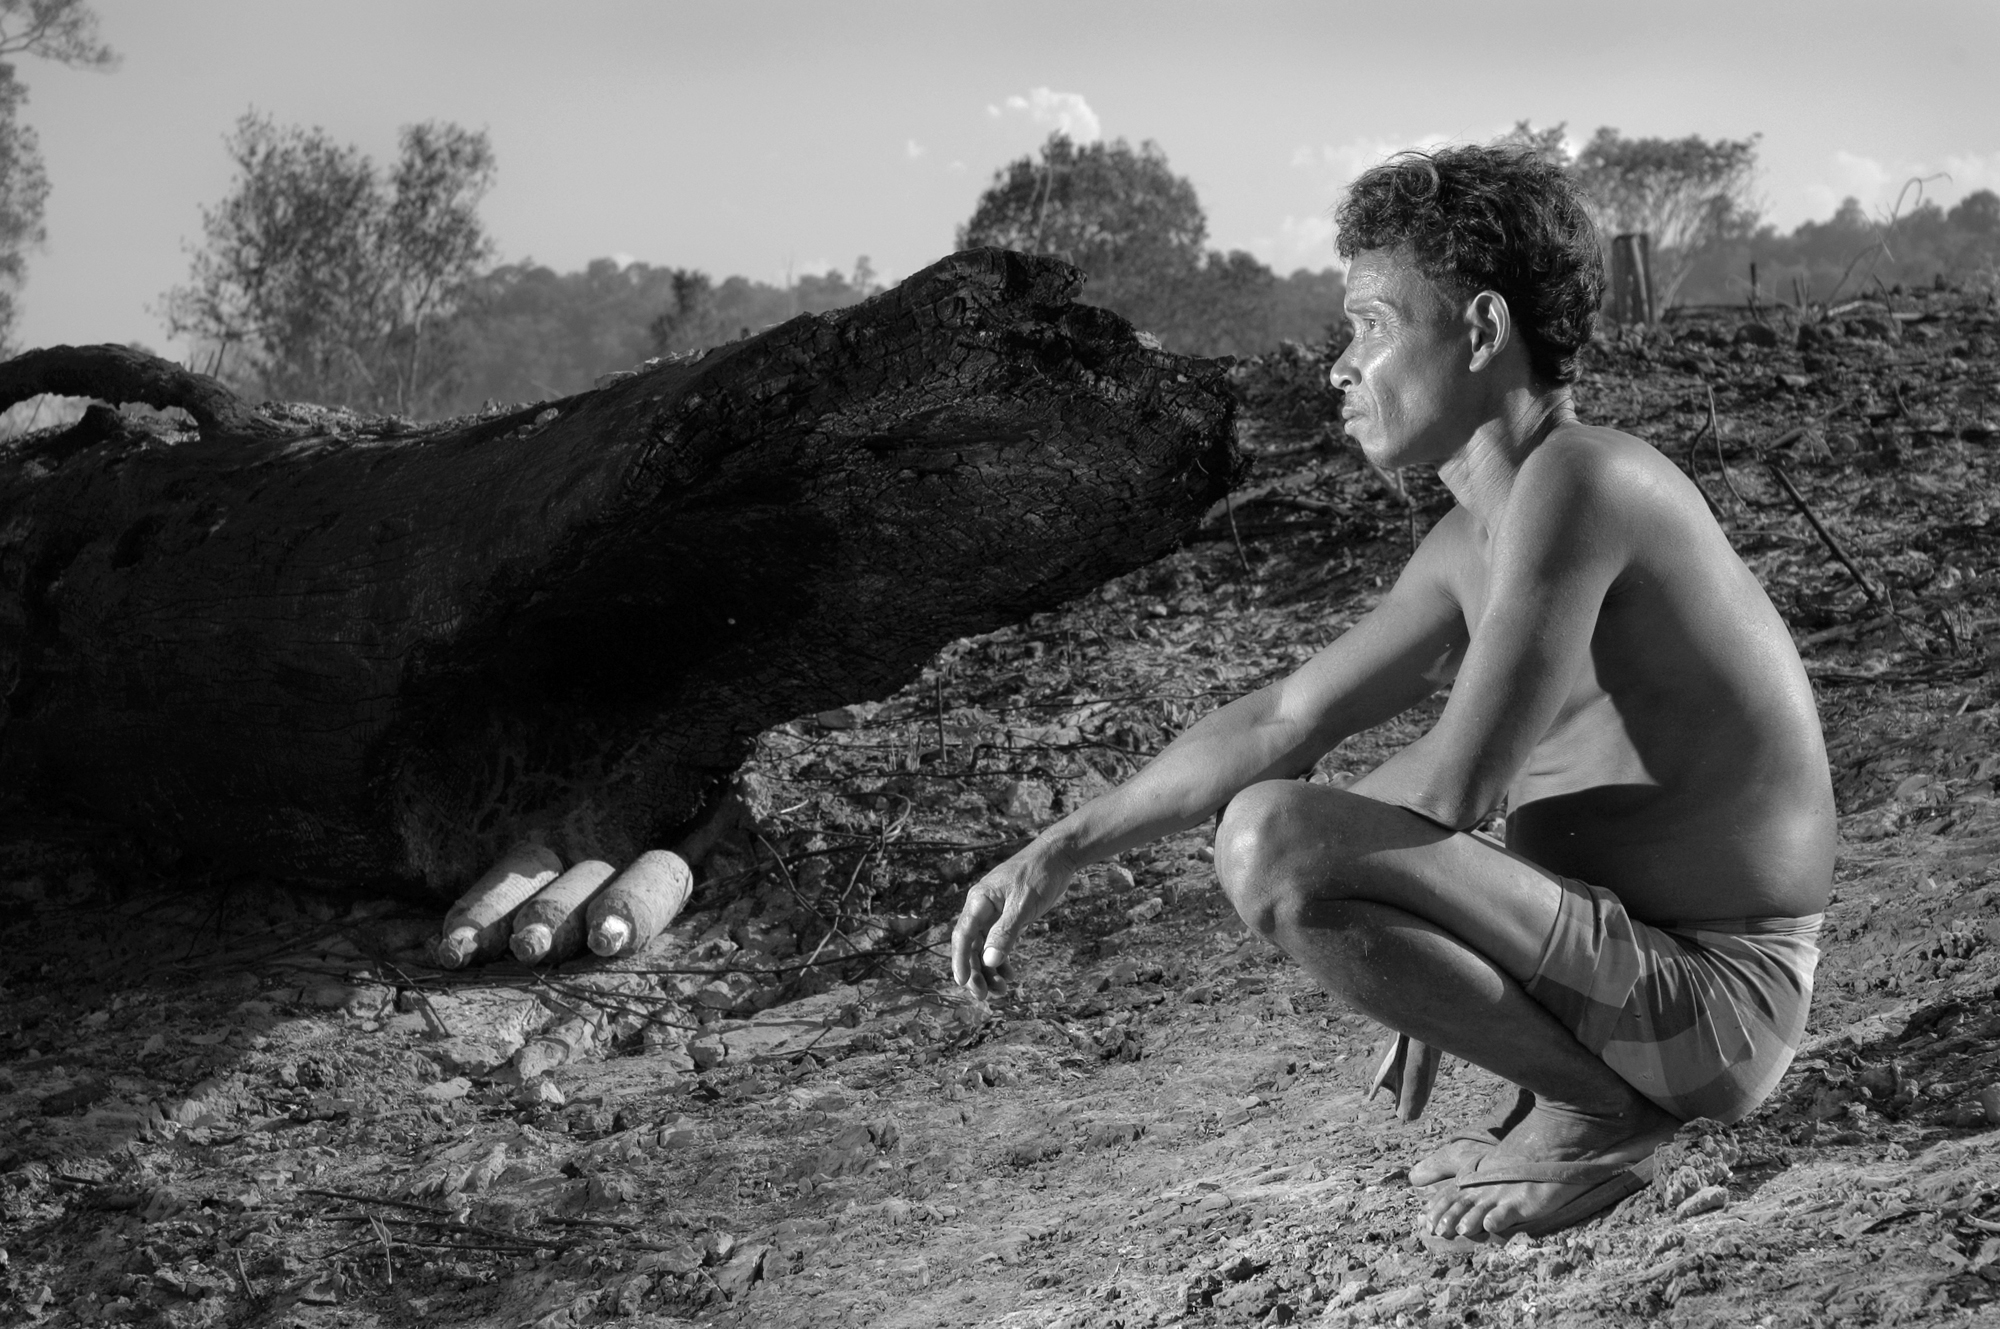 """Tao Lee squats next to three M1 fragmentation cluster bombs found in a cleared field overlooking Etoum, southern Laos. When the field was lit to clear it for farming, the fire """"cooked off"""" several other bombs. They rained shrapnel on the village in the middle of the night, forcing its temporary evacuation."""